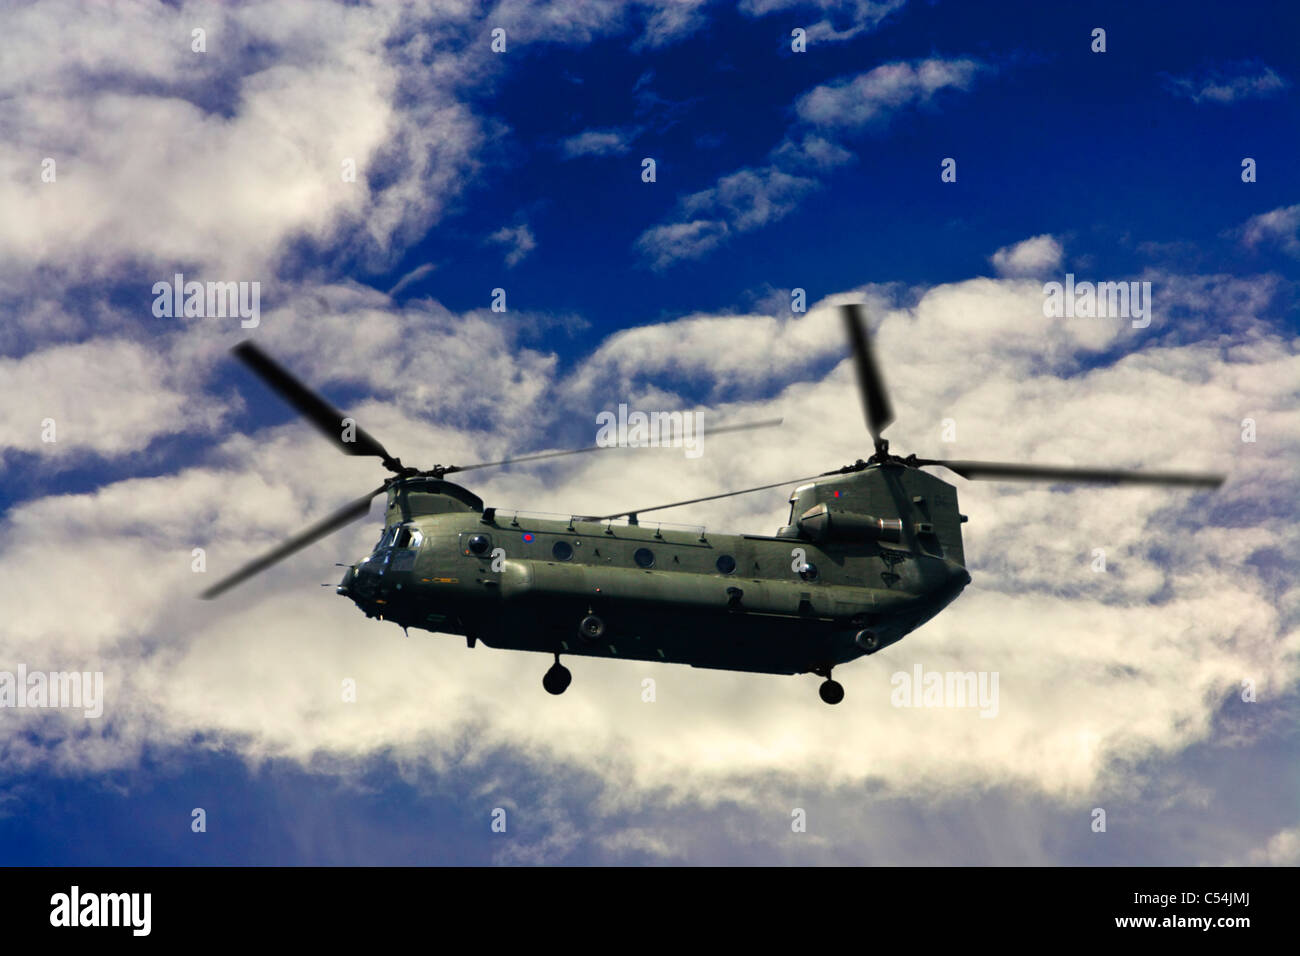 British Army, training, Chinook, Helicopter, Flying, Clouds, Isle of Wight, England, UK - Stock Image